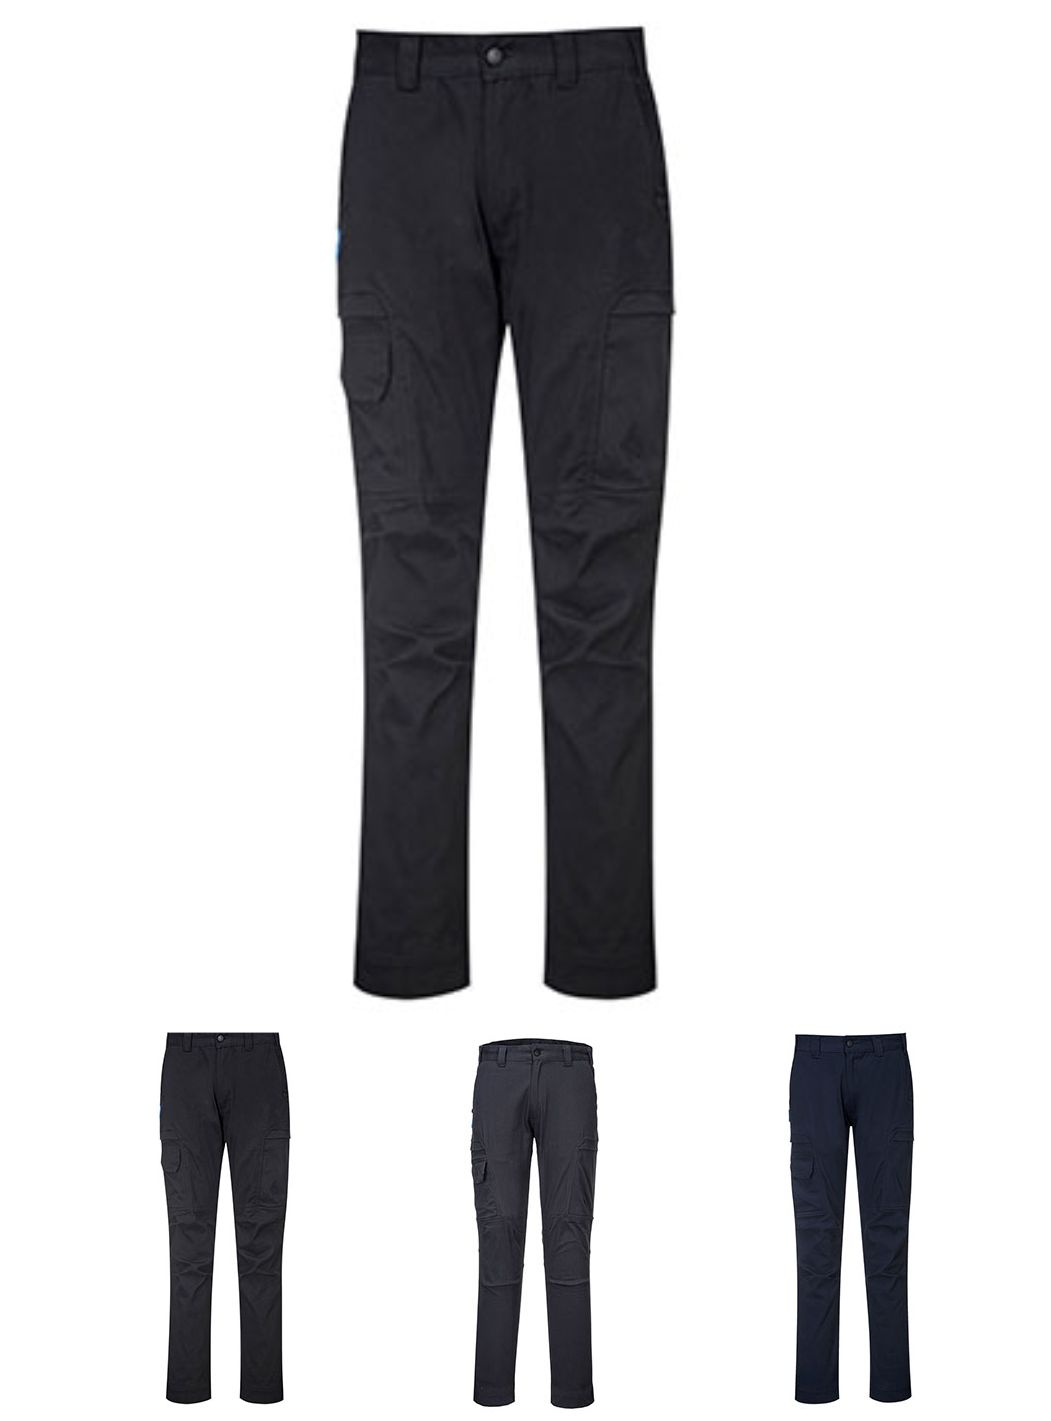 T801 Portwest KX3 Cargo Trousers